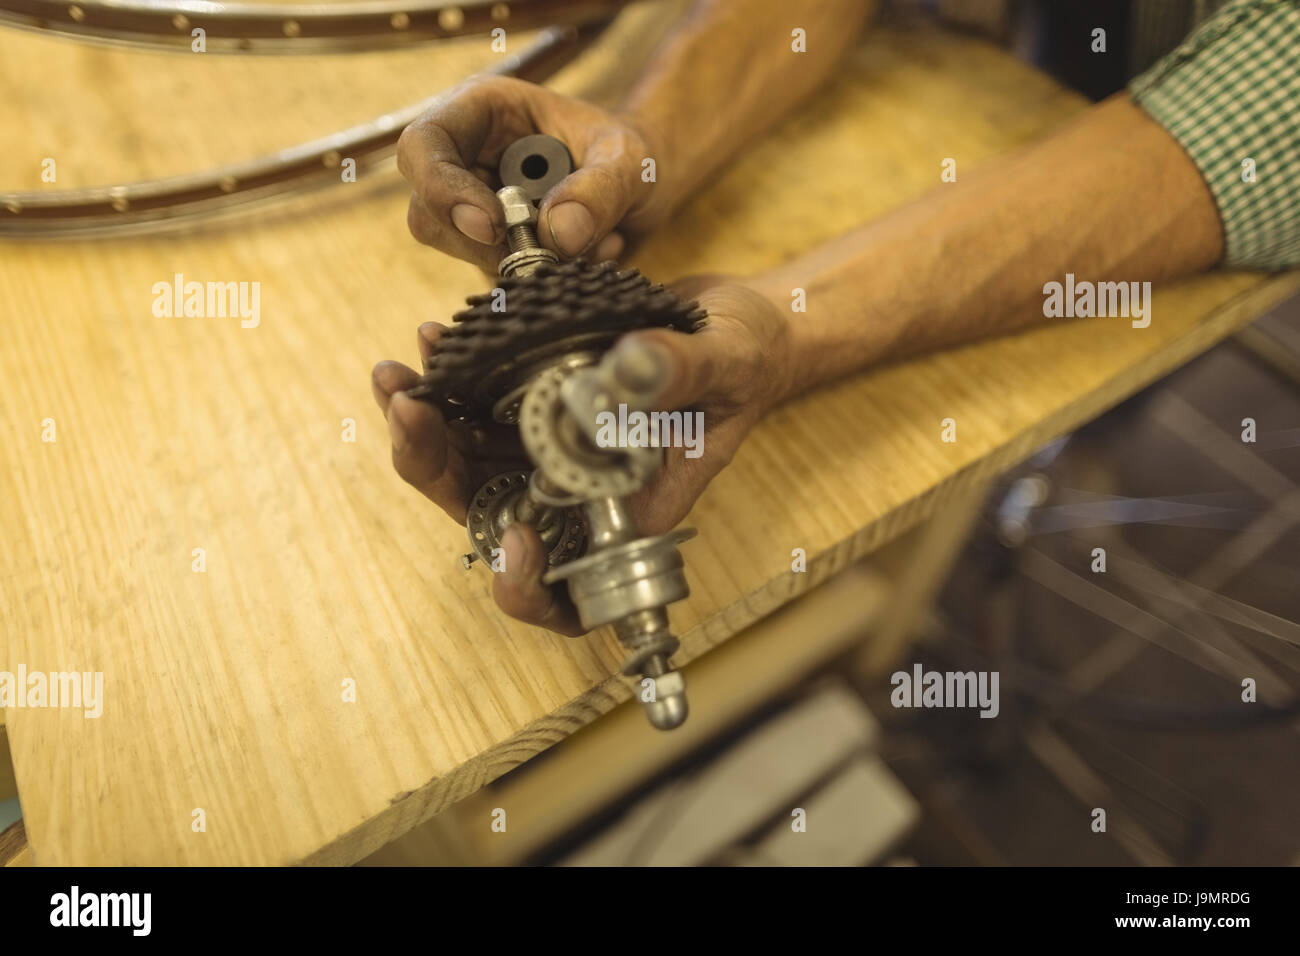 Cropped hands of worker repairing bicycle gear on table at workshop Stock Photo